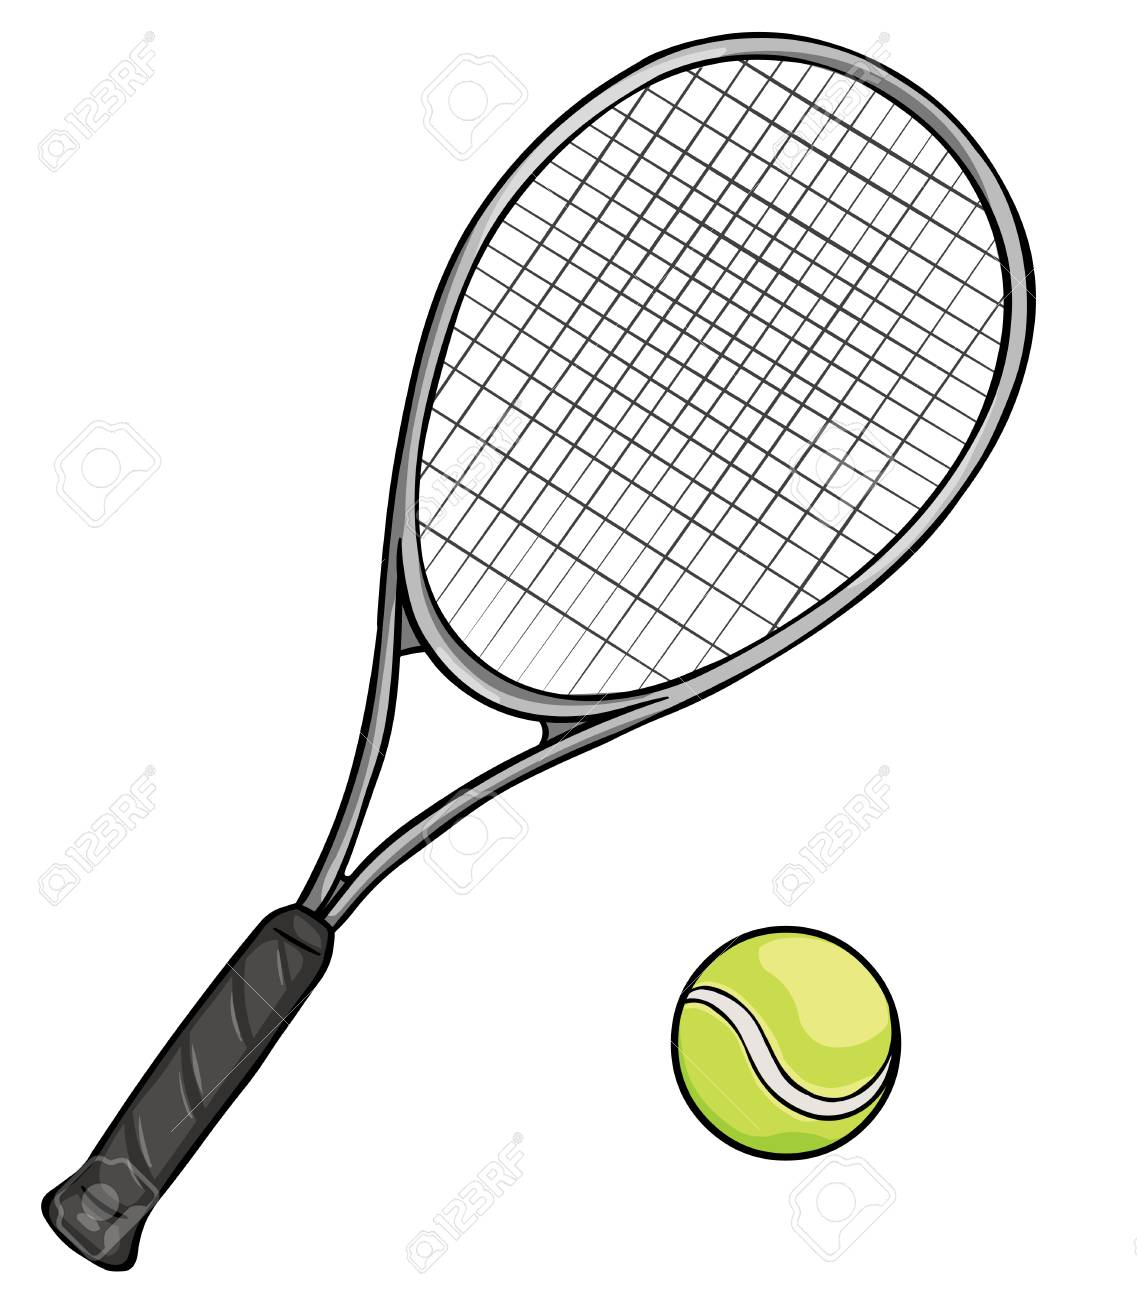 Vector Cartoon Tennis Racket And Ball On White Background Royalty